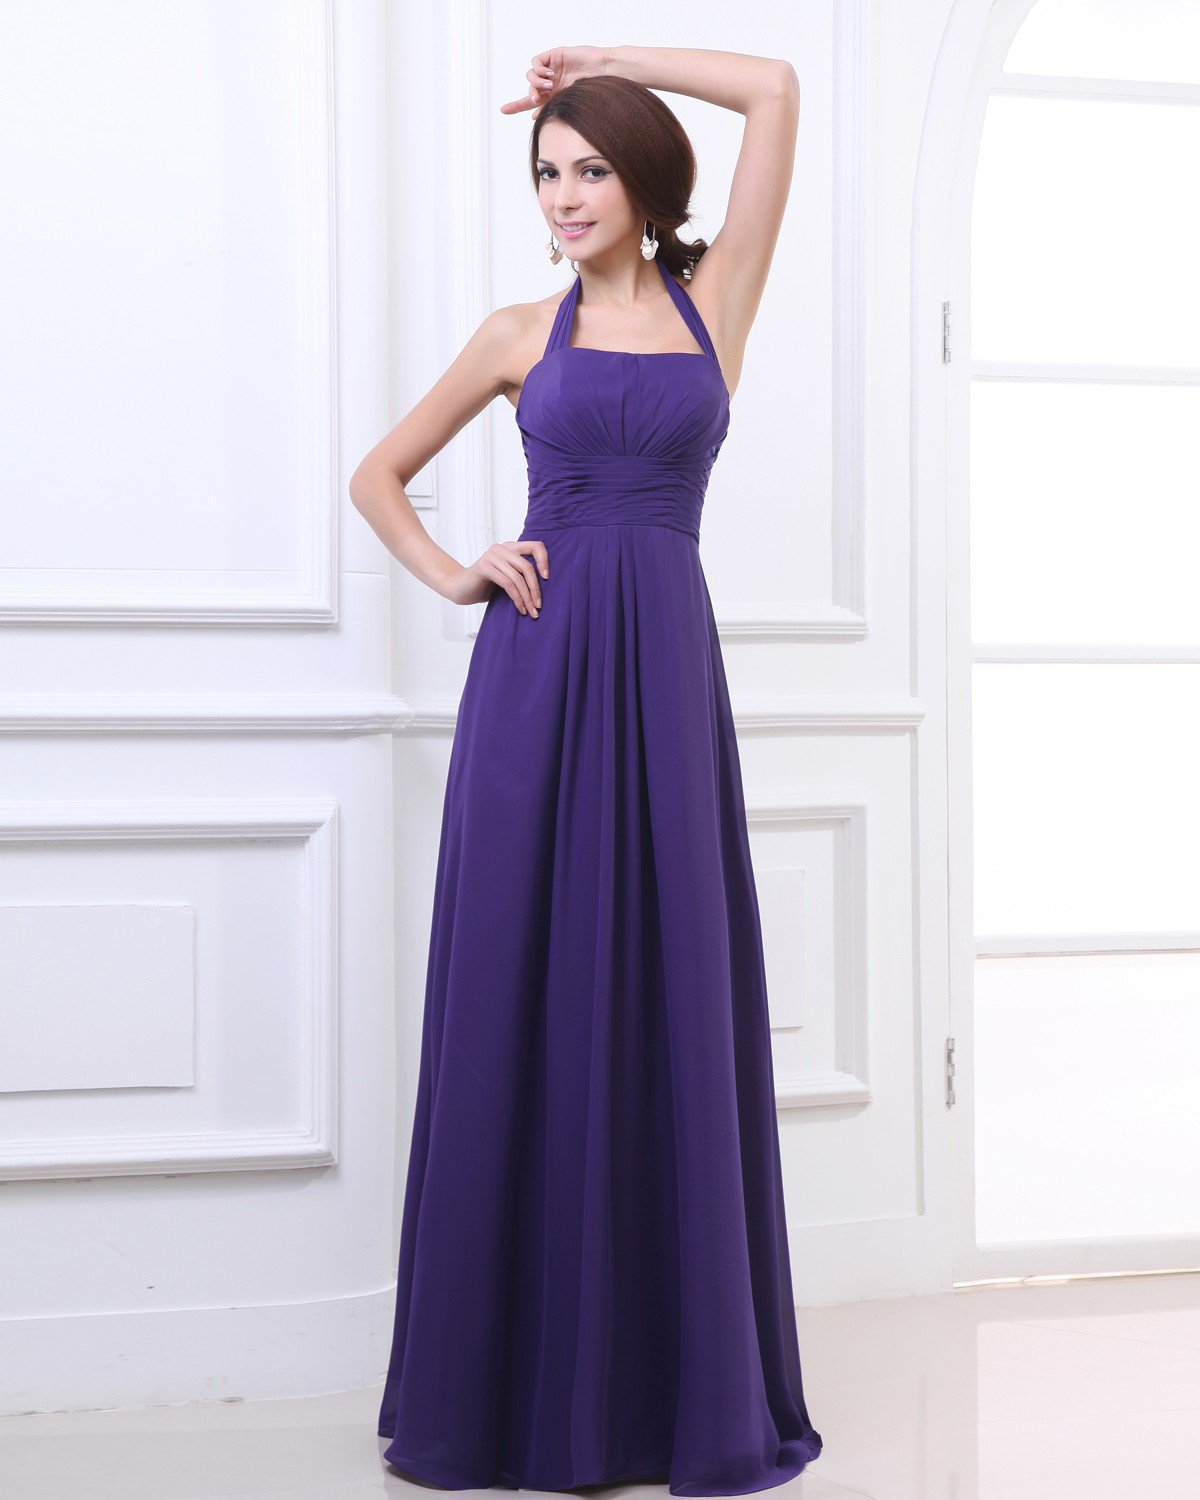 Charming Chiffon Halter Ruffle Floor Length Evening Party Dresses